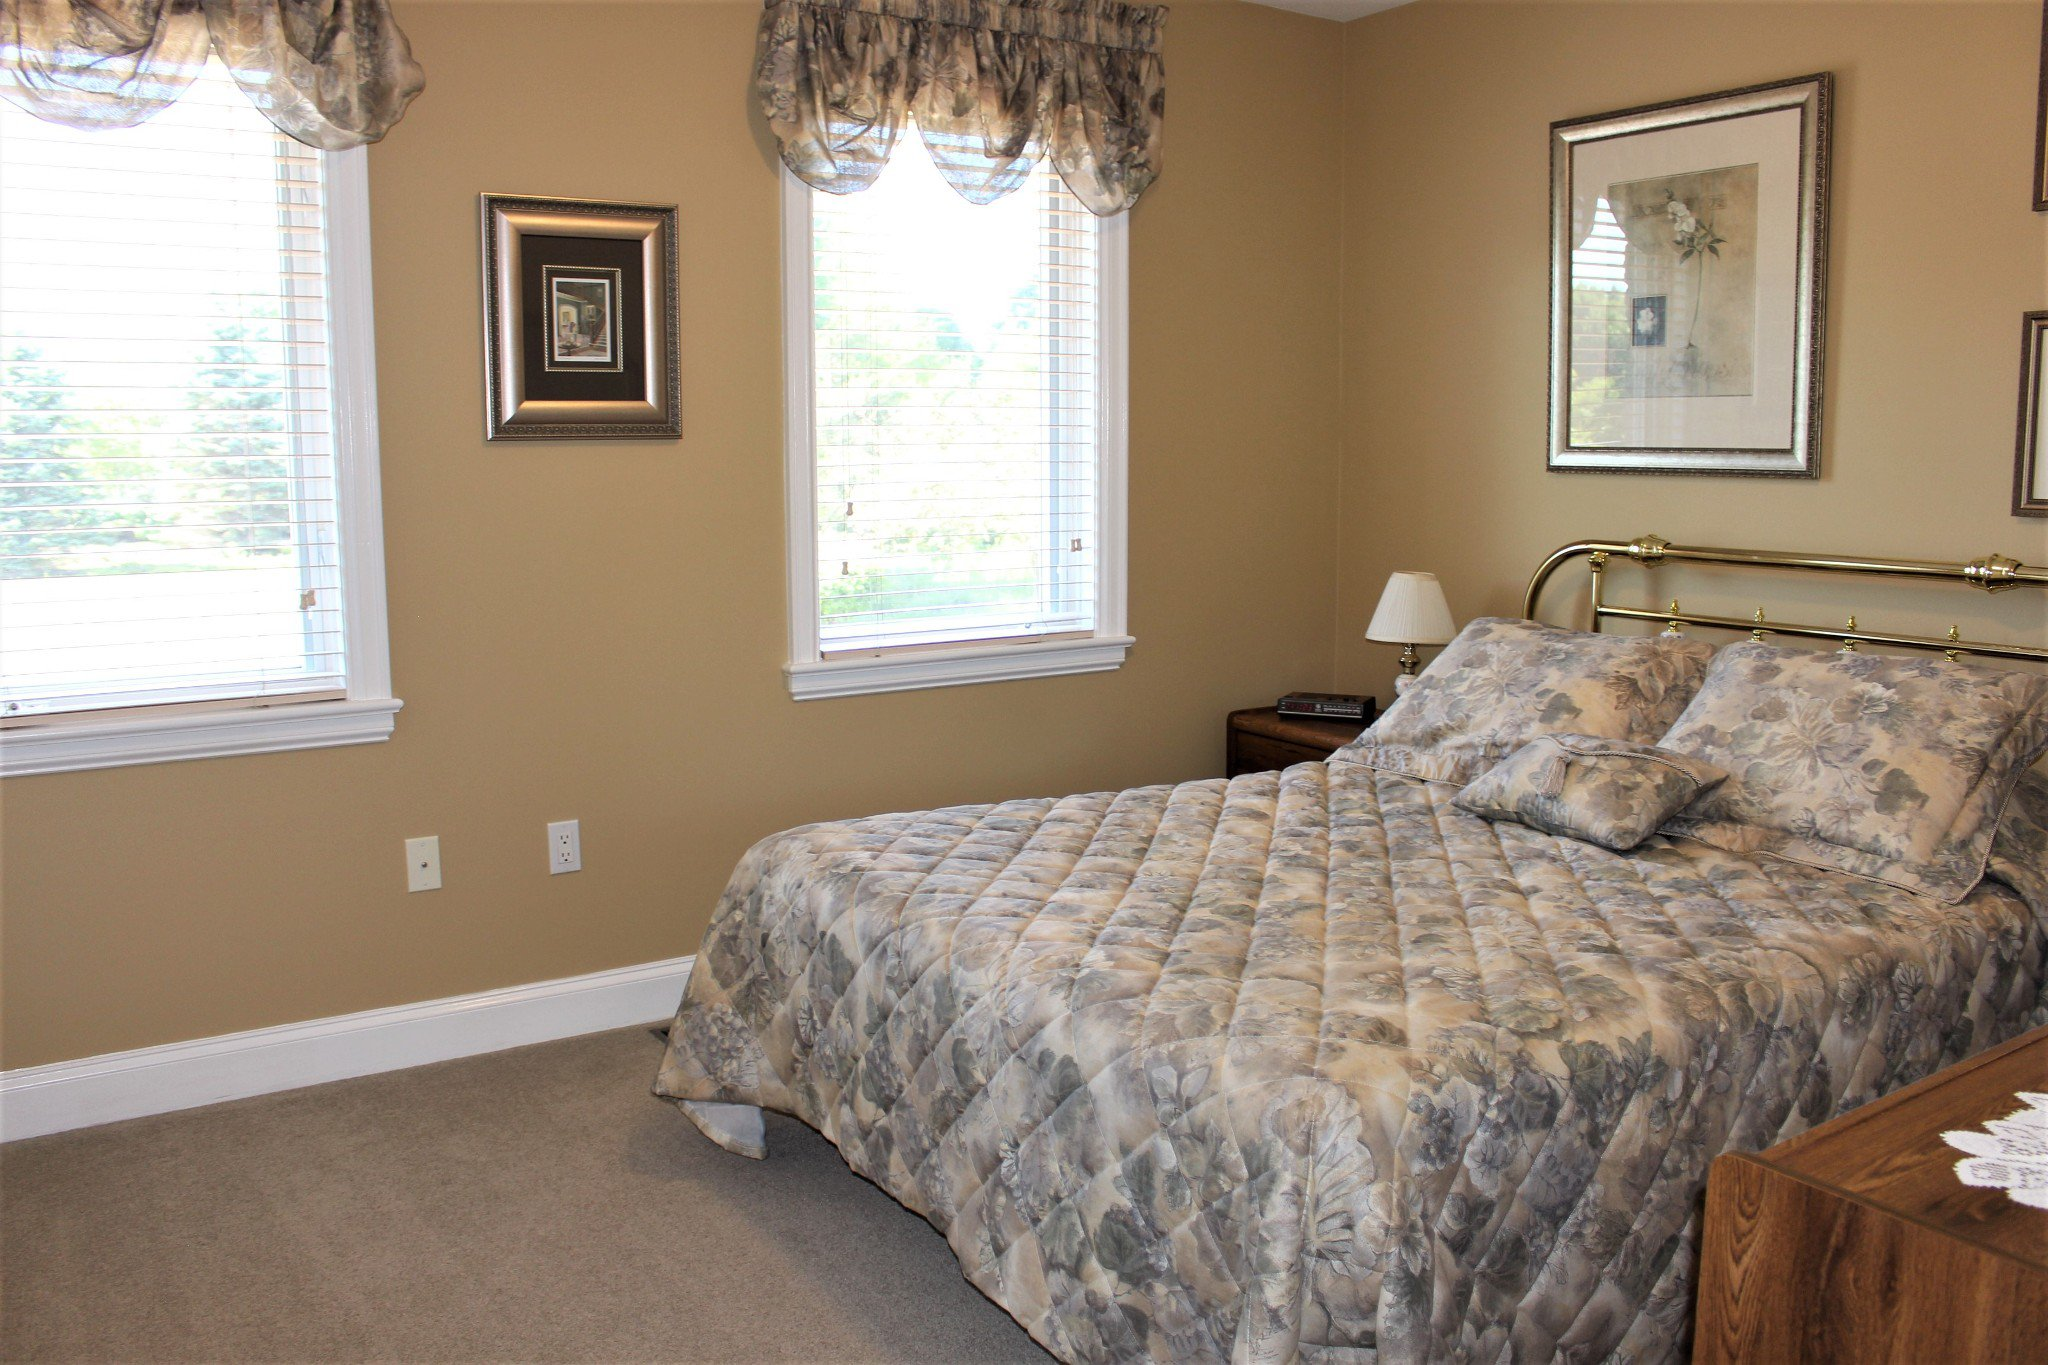 Photo 30: Photos: 159 Nawautin Drive in Grafton: Residential Detached for sale : MLS®# 40012652